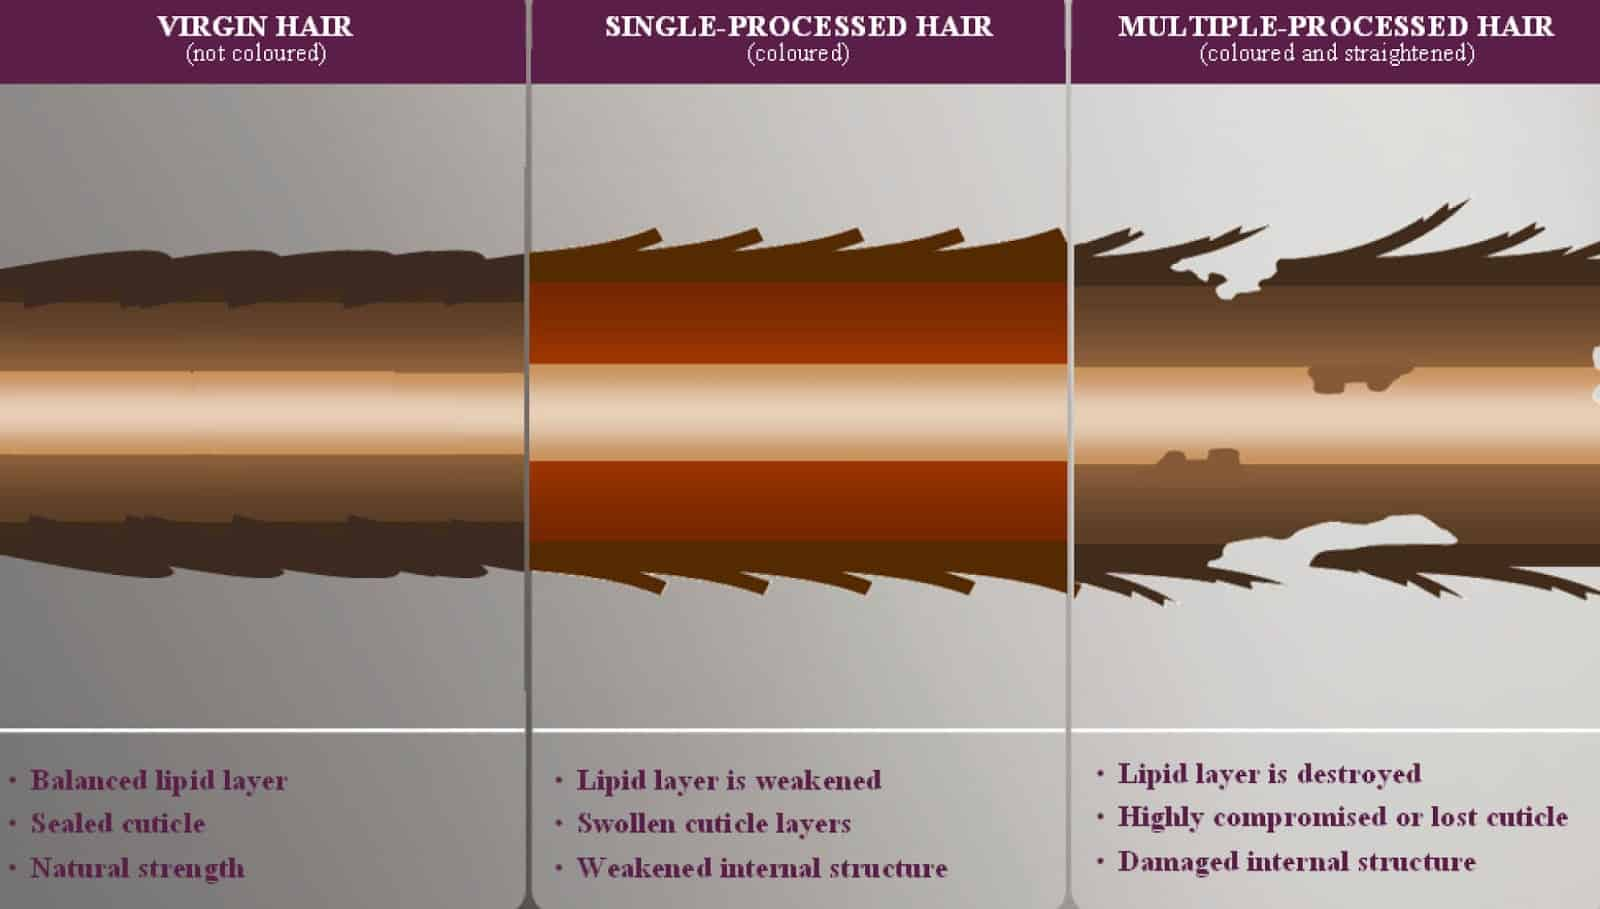 Avoid heat treating your hair